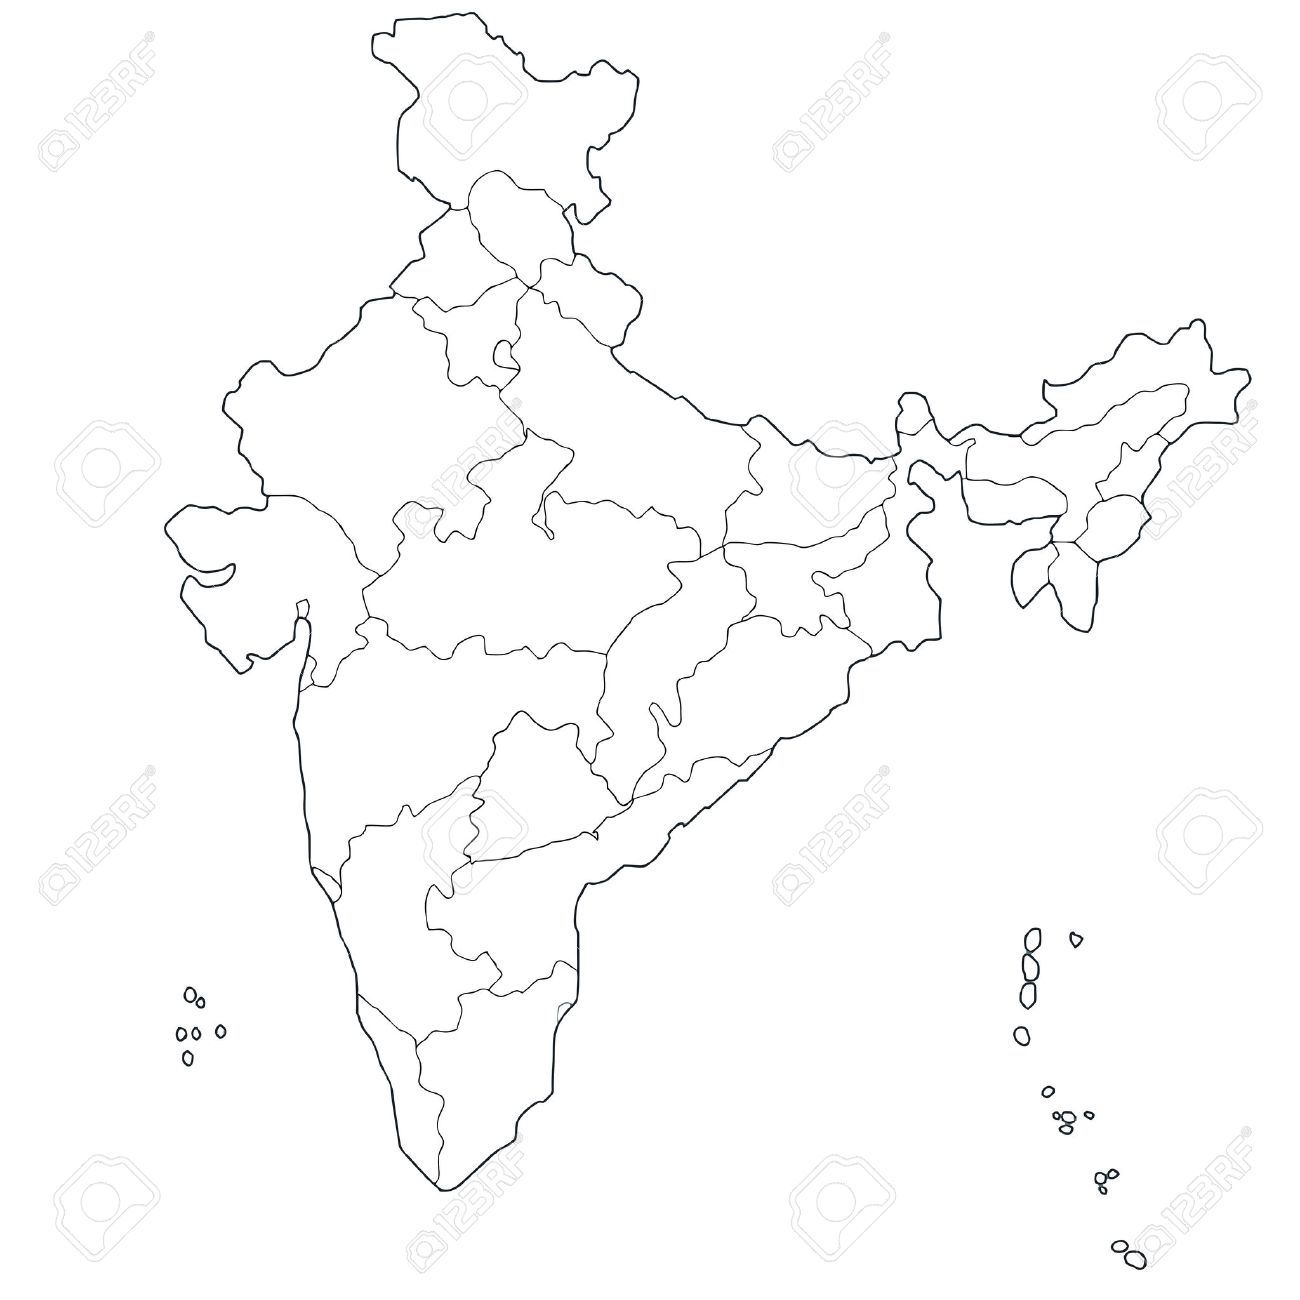 Attractive Outline Map Of The Republic India With The Borders Of The States And Union  Territories,